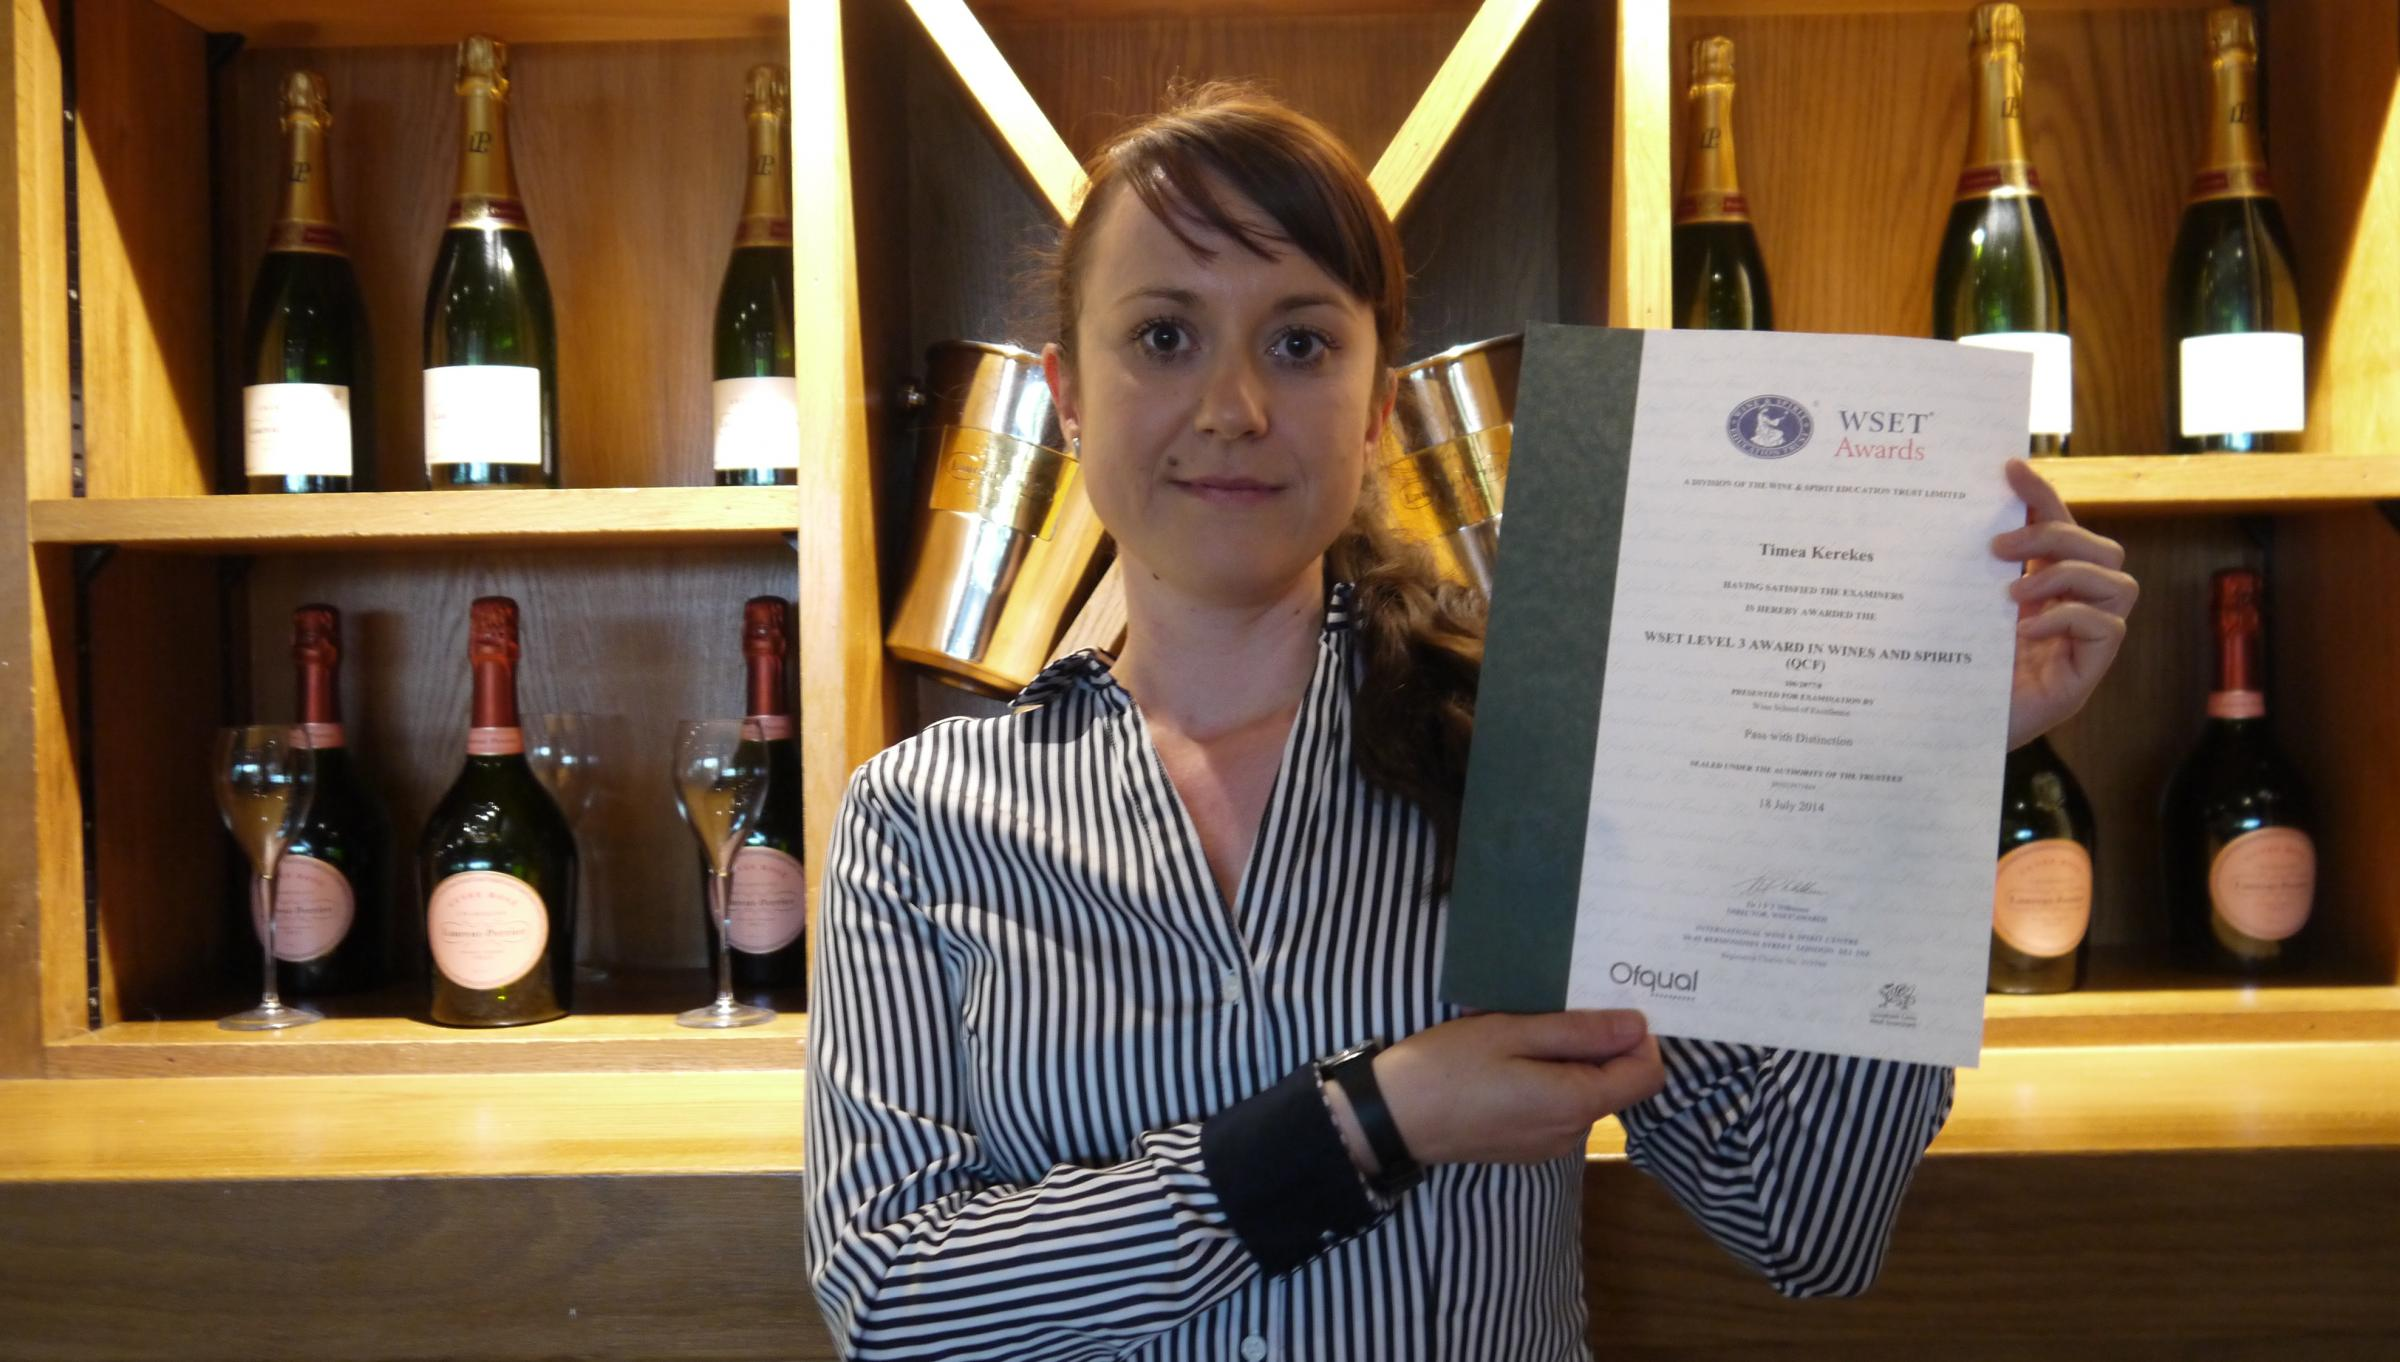 Stamford Bridge restaurant manager Timi Kerekes with her certificate from the Wine and Spirit Education Trust